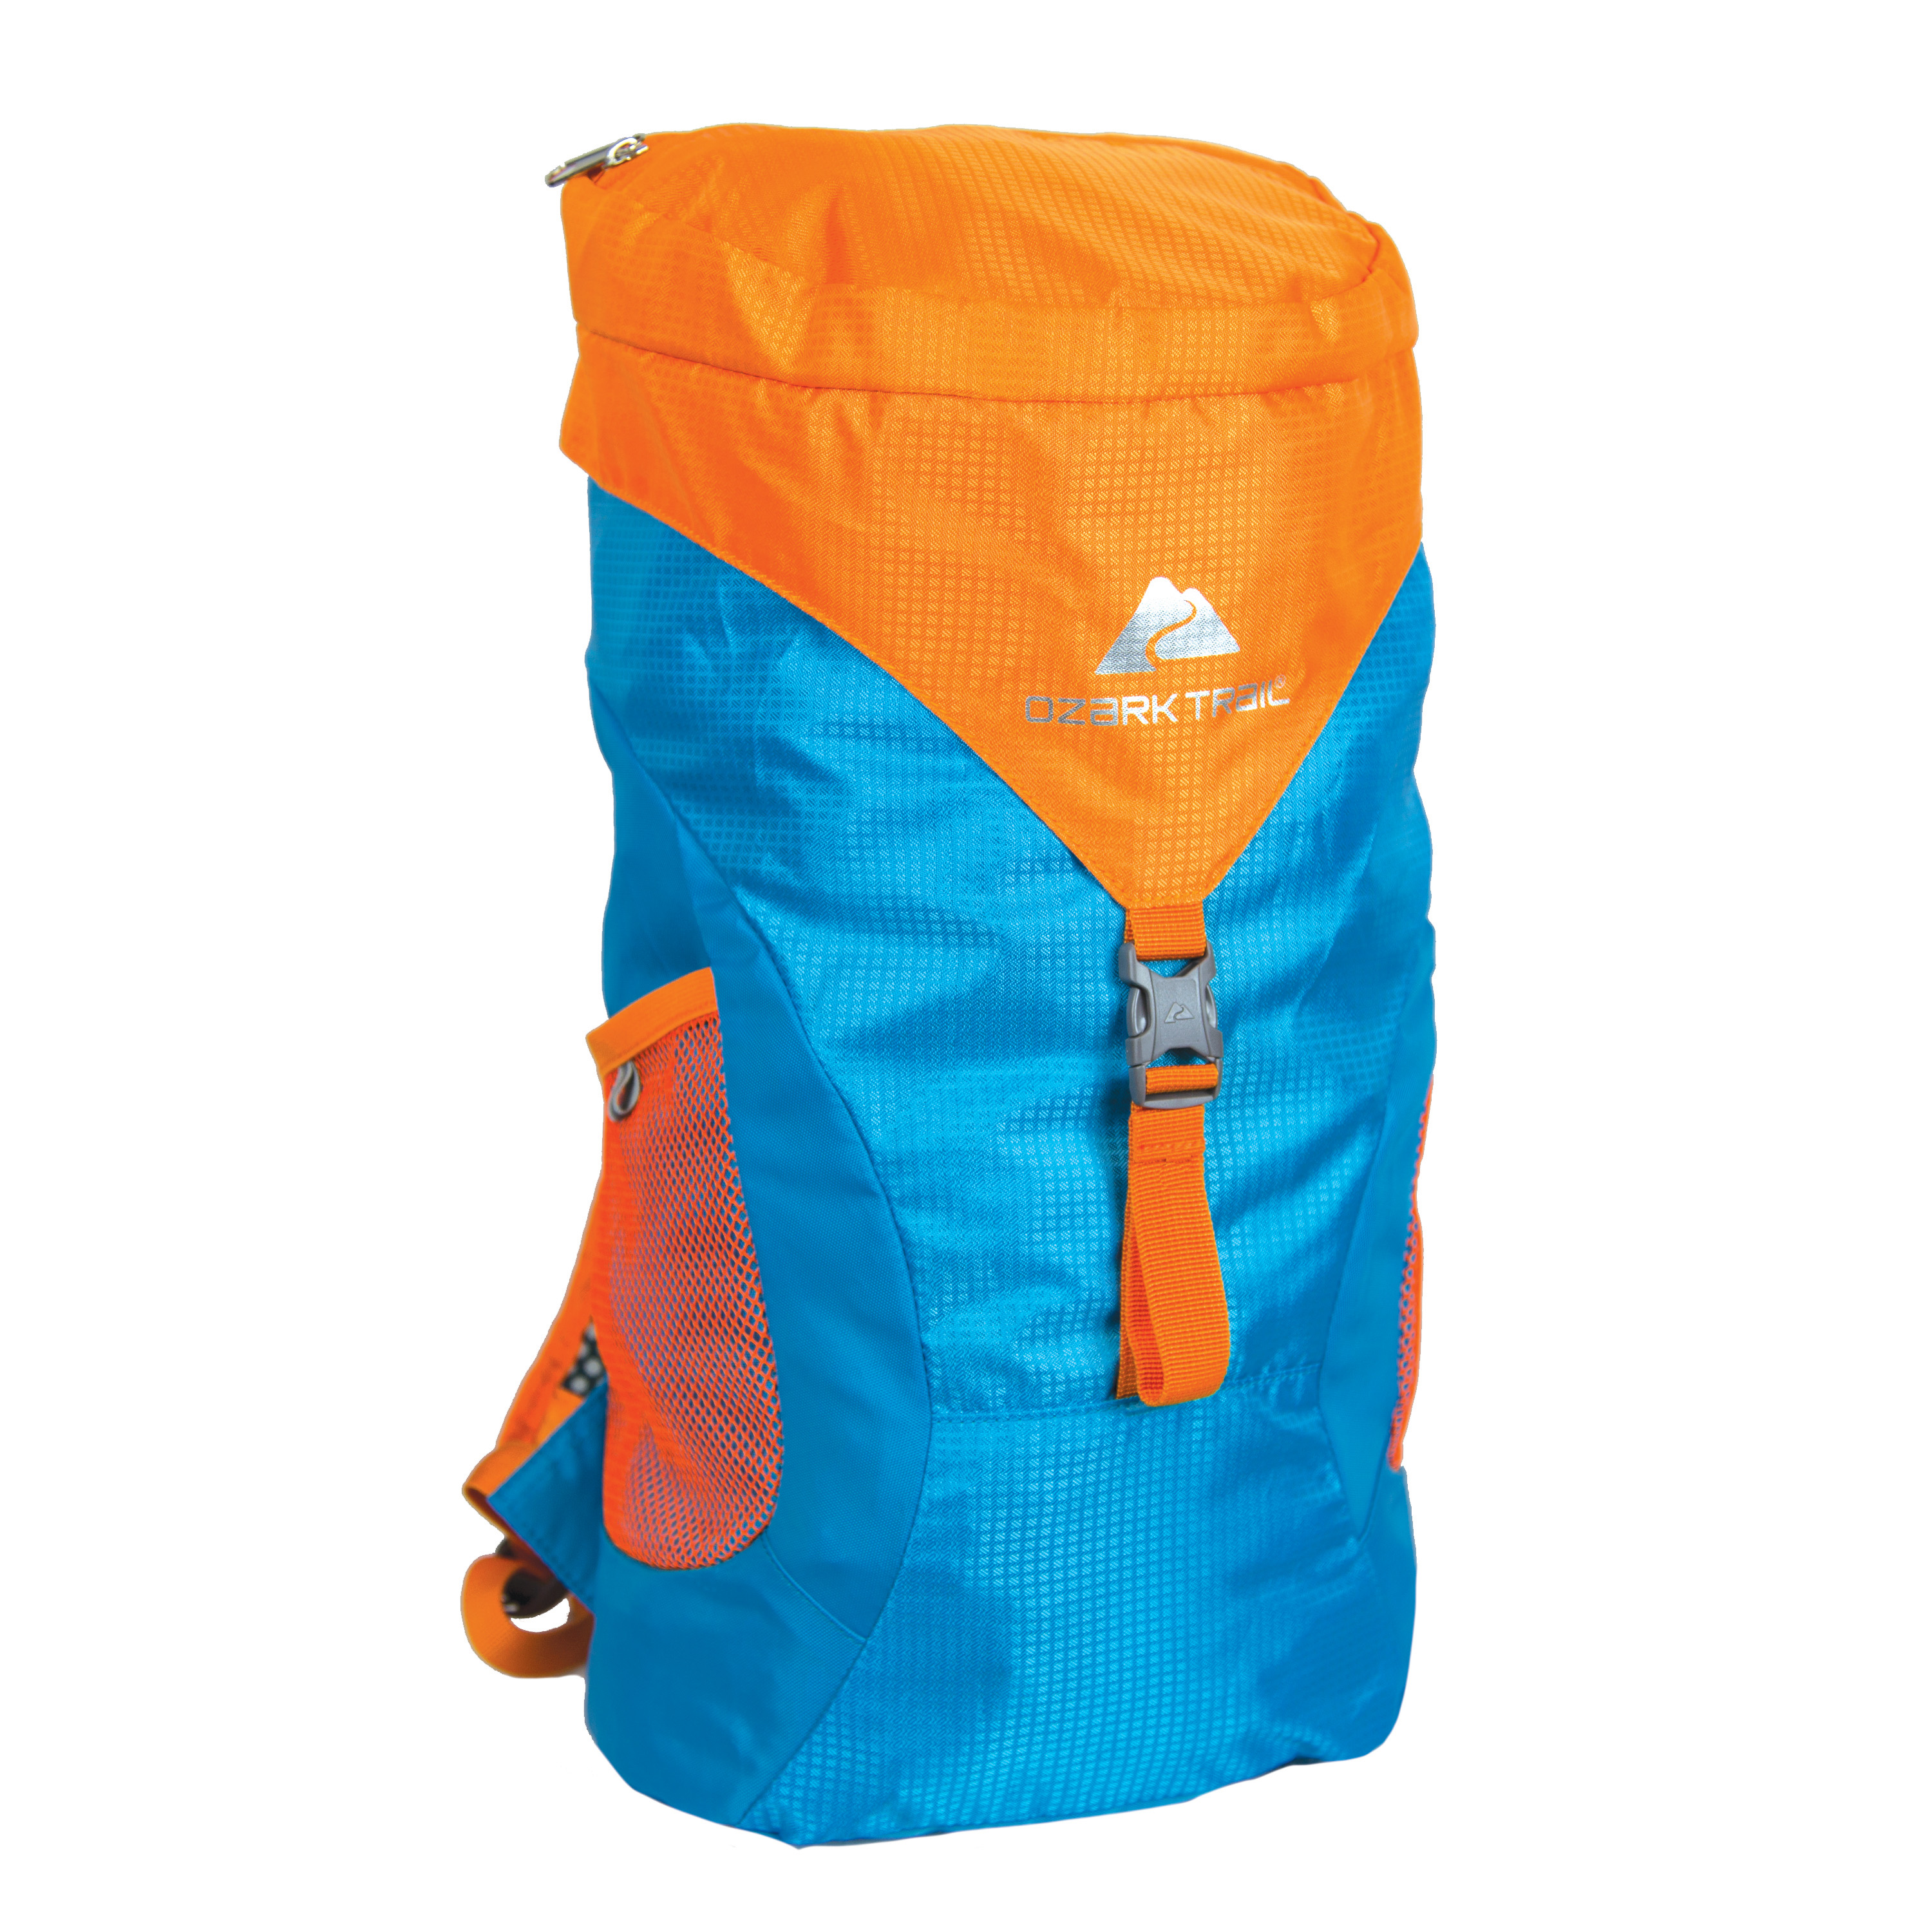 OZARK TRAIL 20L Lightweight Packable Backpack